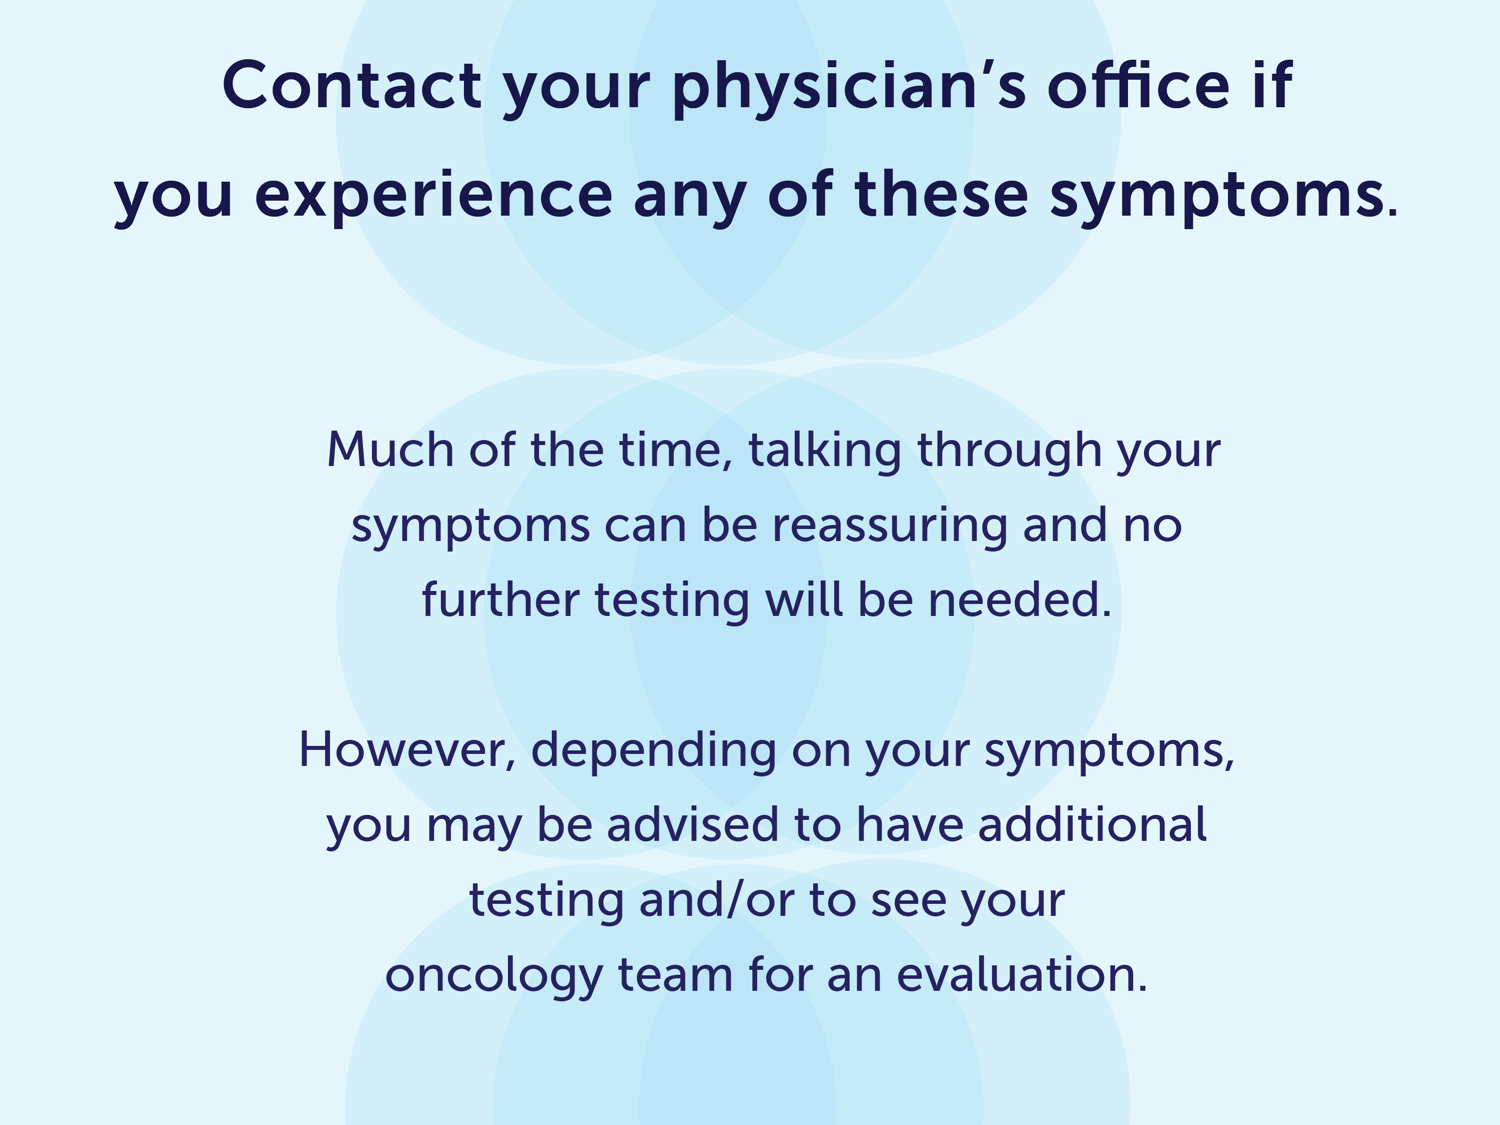 Contact your physician's office if you experience any of these symptoms. Much of the time, talking through your symptoms can be reassuring and no further testing will be needed. However, depending on the symptoms, you may be advised to have additional testing and/or to see your oncology team for an evaluation.